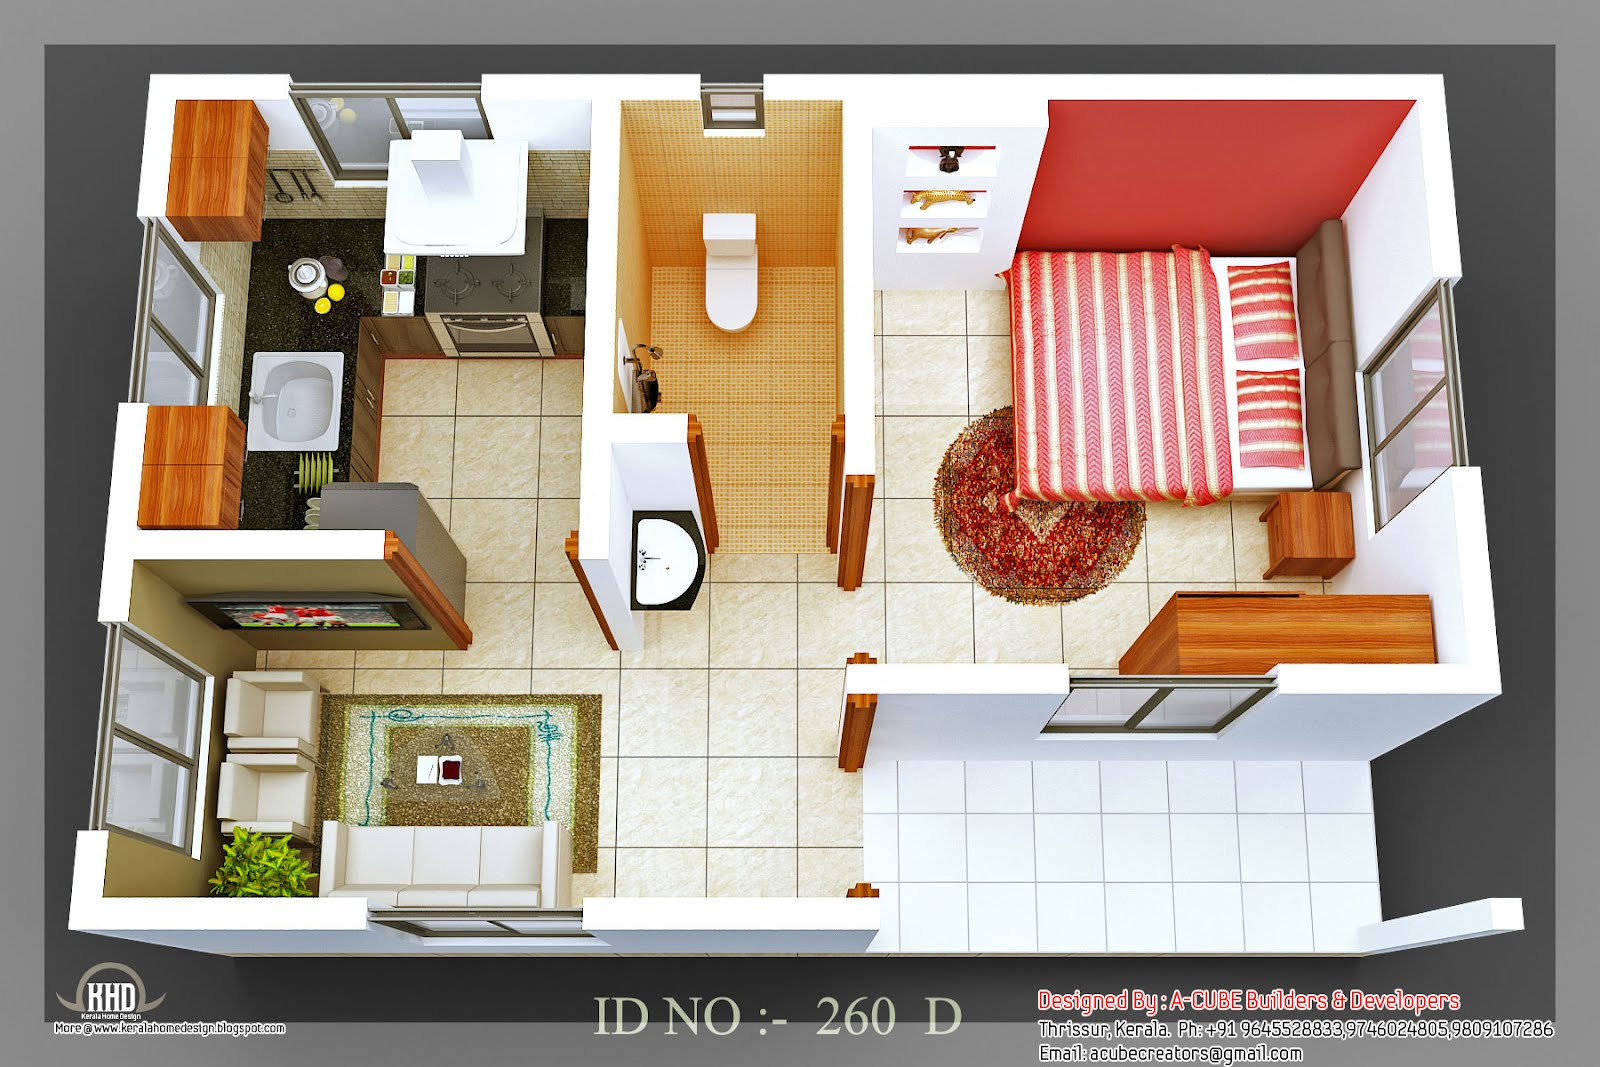 3D isometric views of small house plans - Kerala home design and floor plans - 8000+ houses